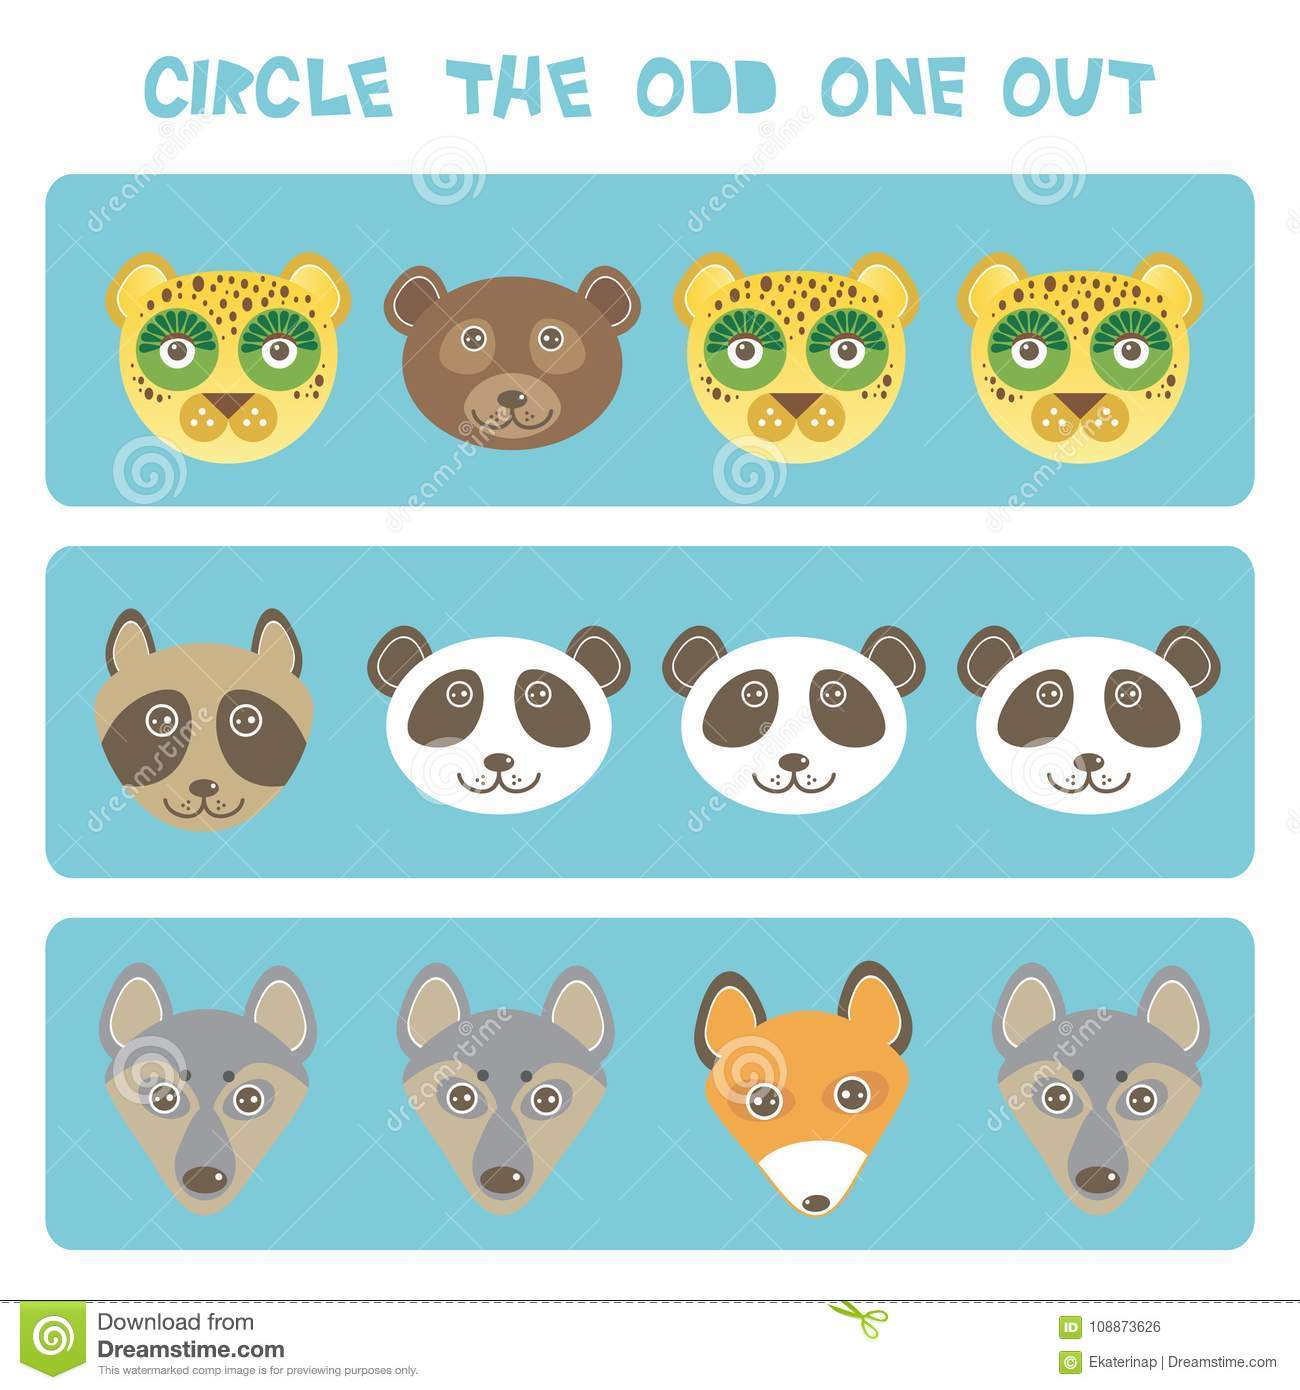 Image of: Fat Visual Logic Puzzle Circle The Odd One Out Kawaii Animals Fox Raccoon Panda Bear Wolf Dog Leopard Pastel Colors On Blue Background Vector Illustration Dreamstimecom Visual Logic Puzzle Circle The Odd One Out Kawaii Animals Fox